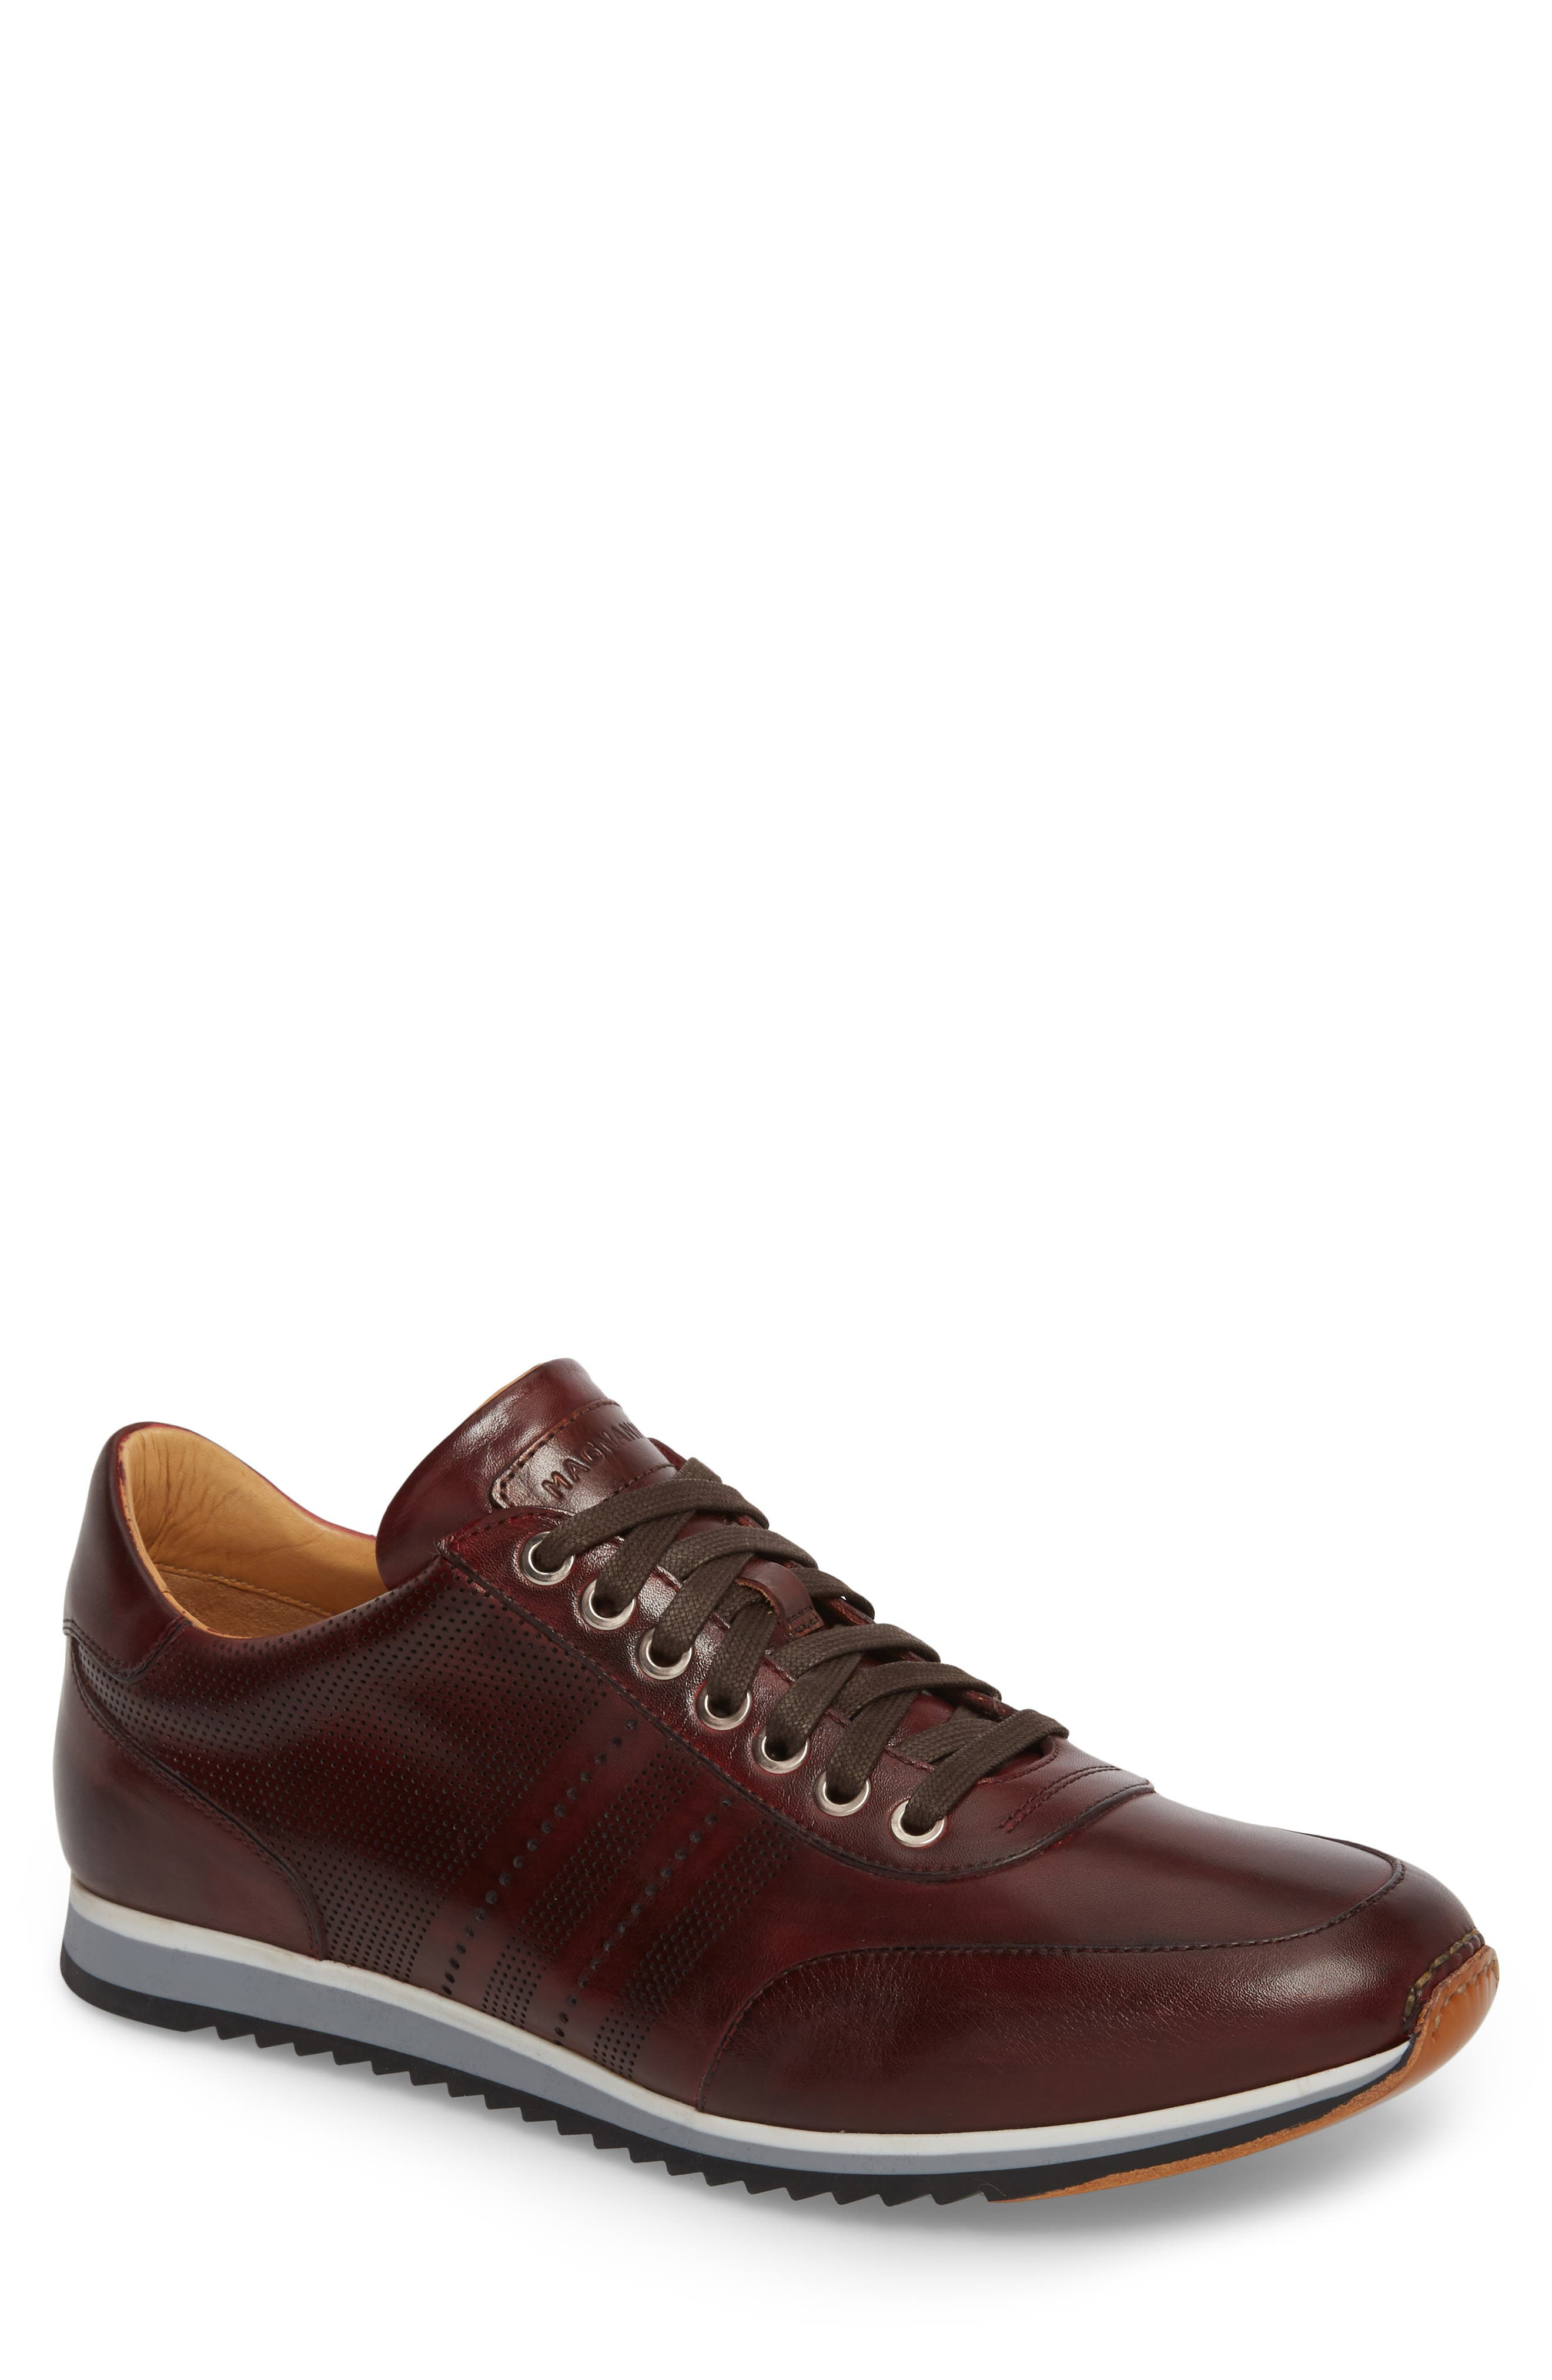 Merino Sneaker,                             Main thumbnail 1, color,                             TINTO LEATHER